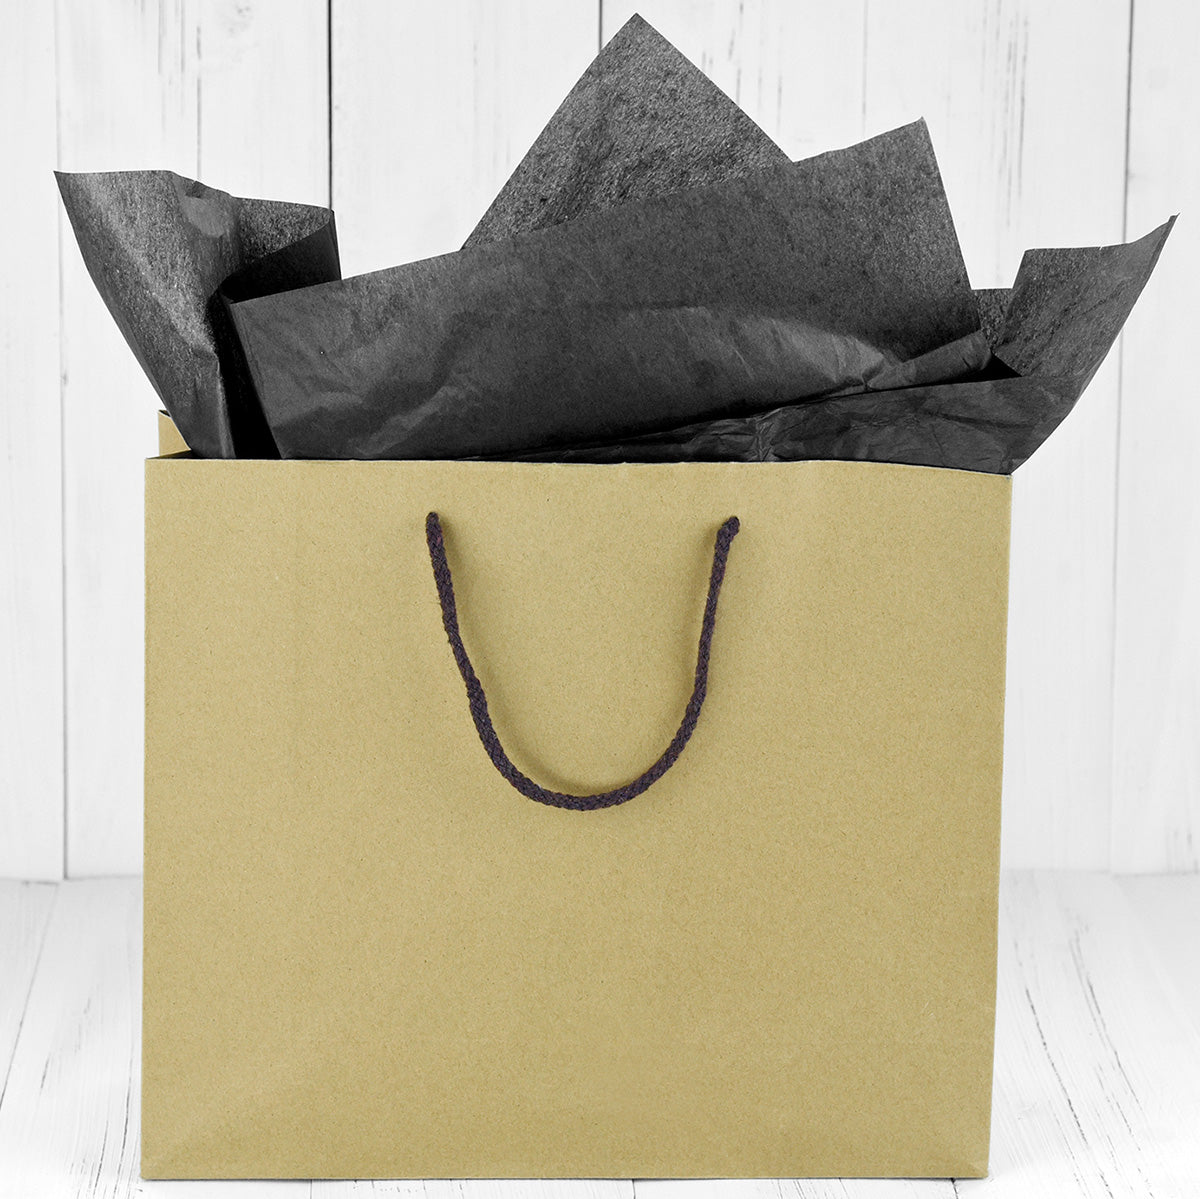 50 Sheets Black Wrapping Tissue Paper